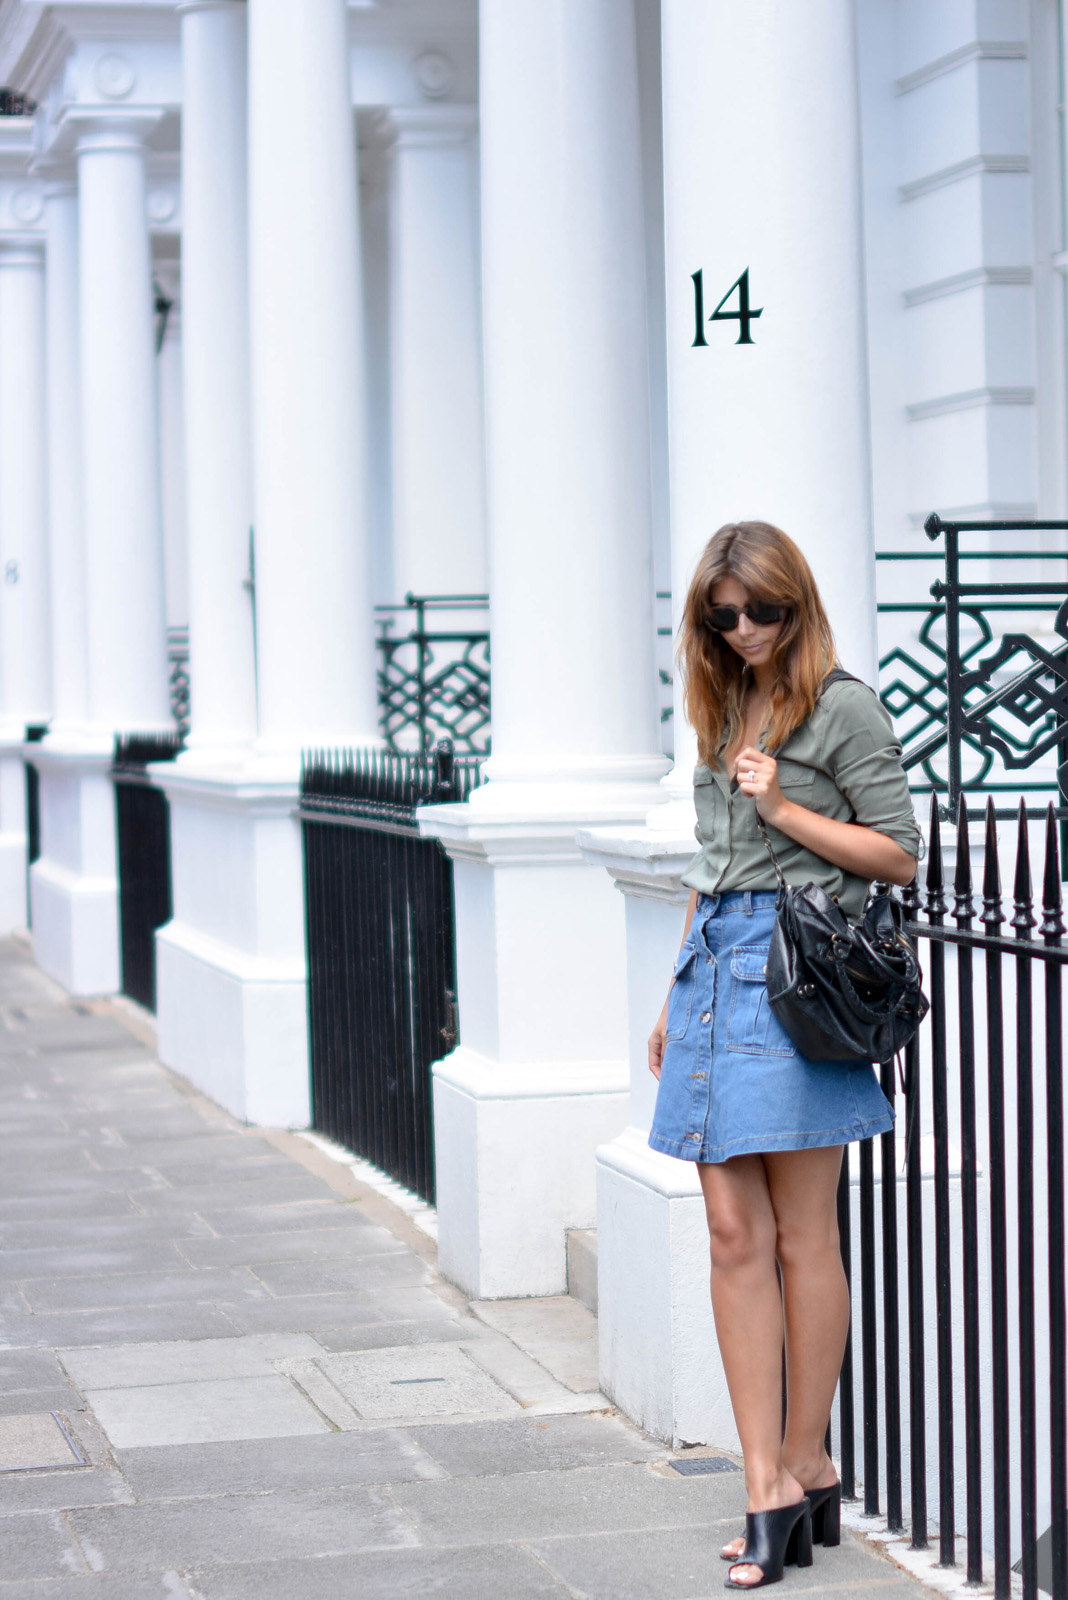 EJSTYLE - Emma Hill wears button up denim skirt with pockets with a khaki shirt, Balenciaga bag, black leather mules, heels, how to dress for summer (2)